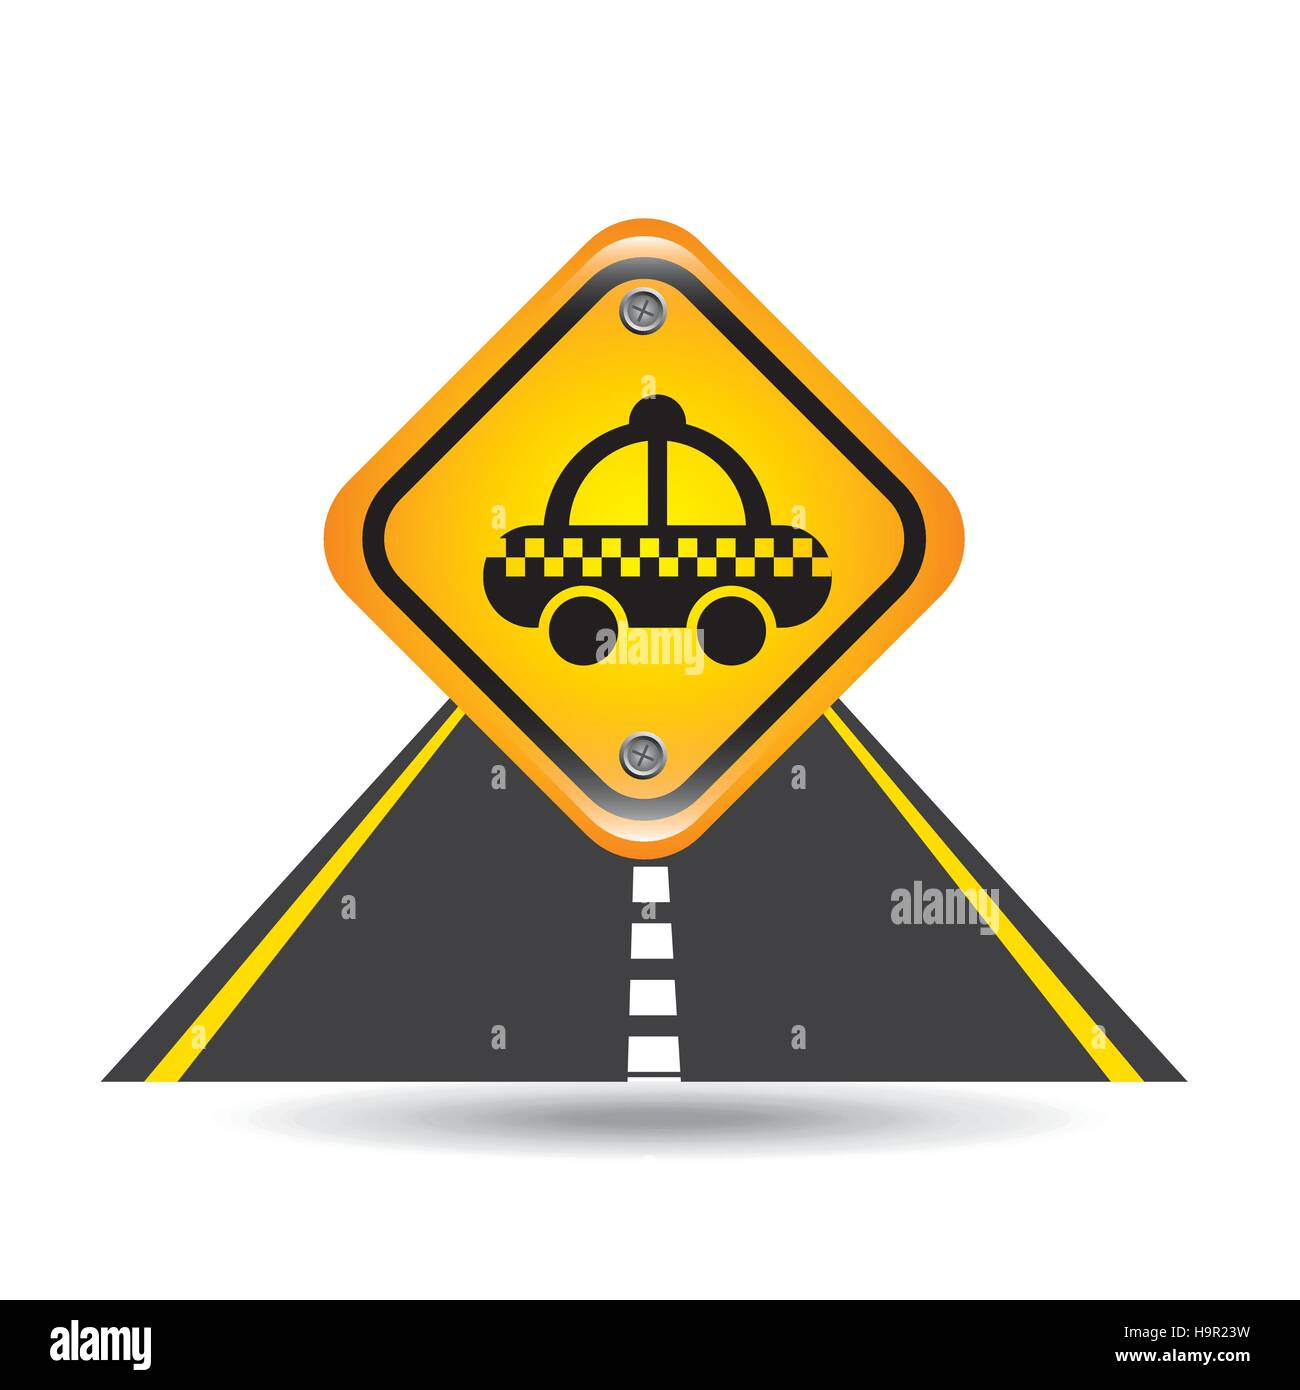 taxi yellow road street sign vector illustration eps 10 - Stock Image